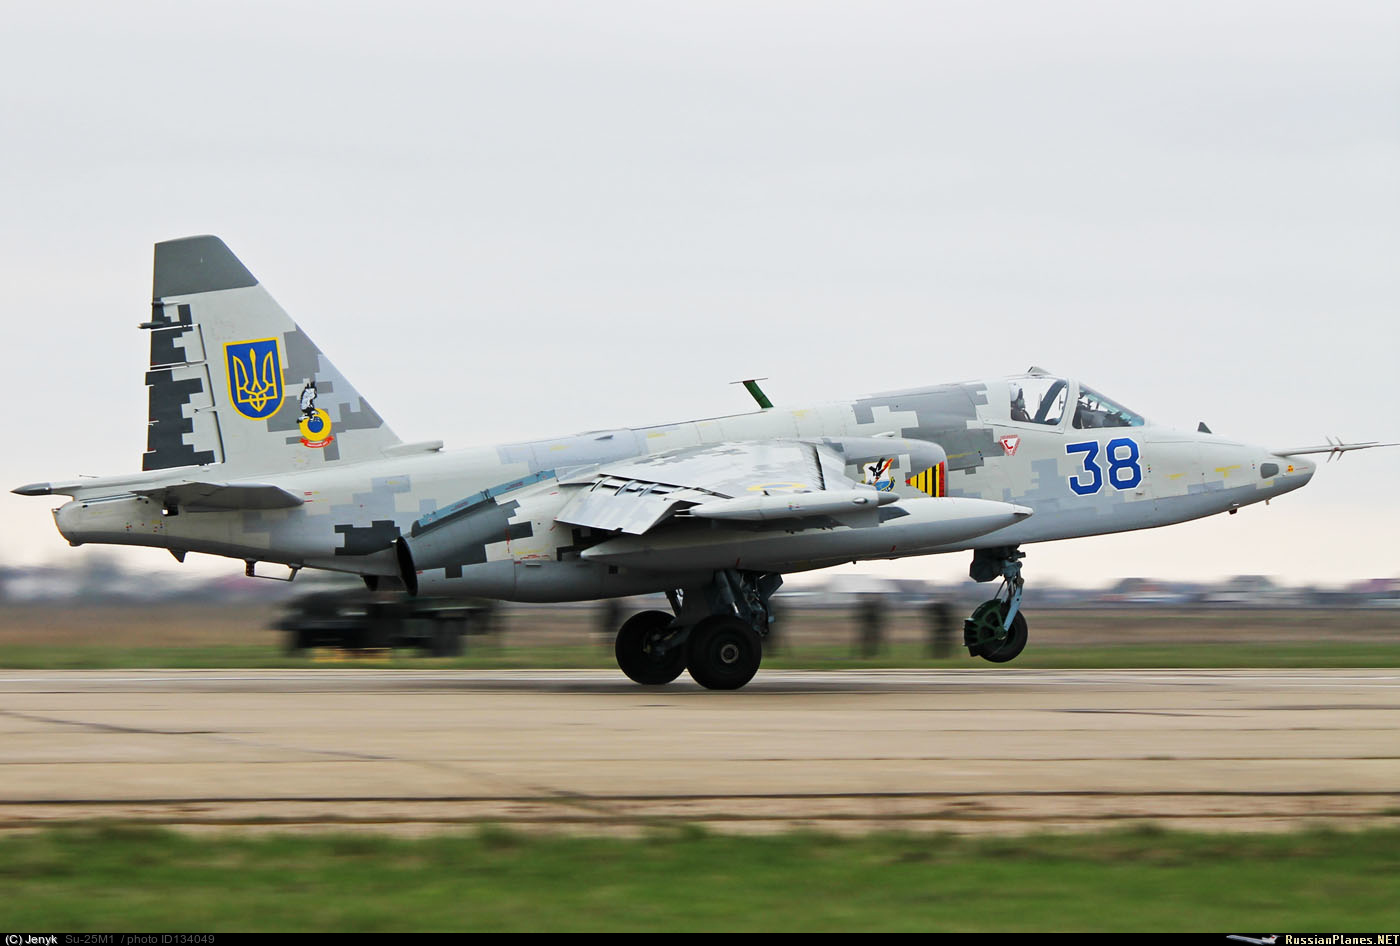 http://russianplanes.net/images/to135000/134049.jpg